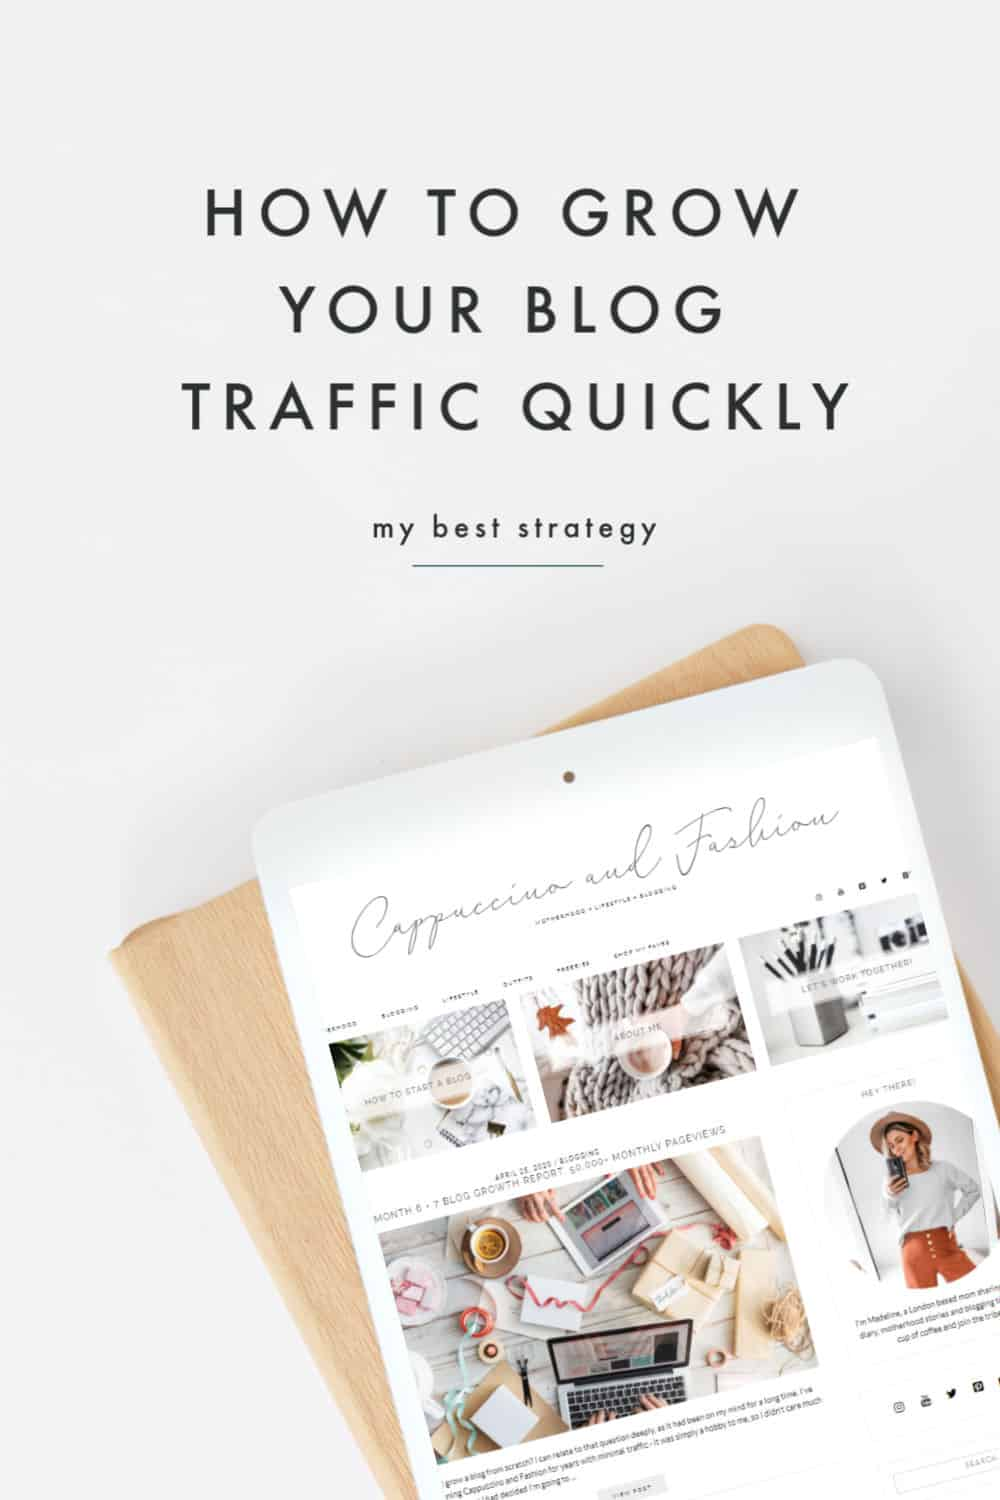 How to grow your blog traffic quickly